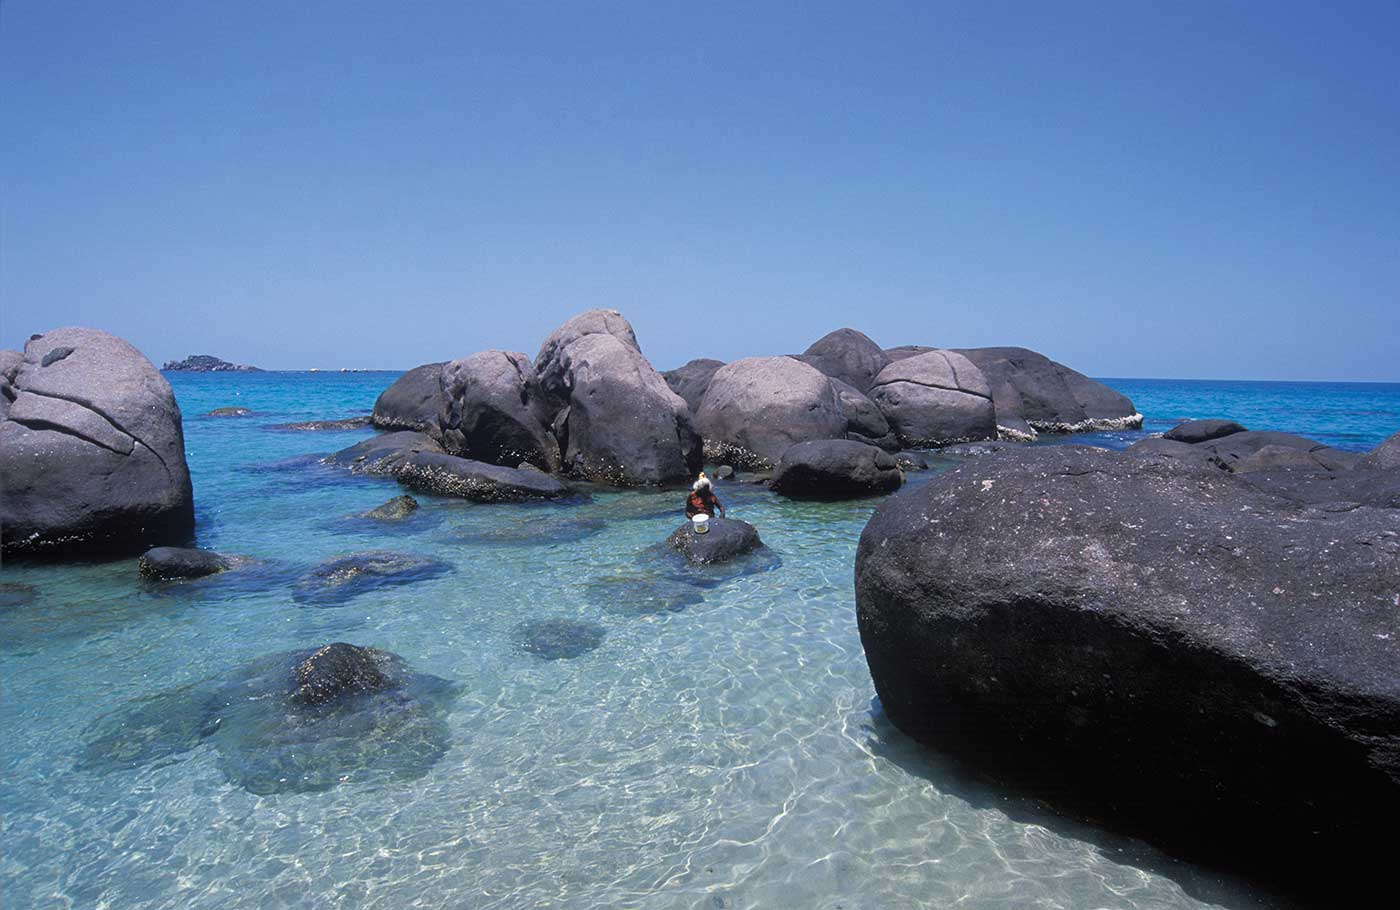 A colour photograph of a person wading in shallow water near a beach. Large rounded boulders surround the person. Submerged rocks can be seen in the clear blue water. Parts of the horizon are visible beyond the large boulders. The blue cloudless sky is in the top half of the photograph.